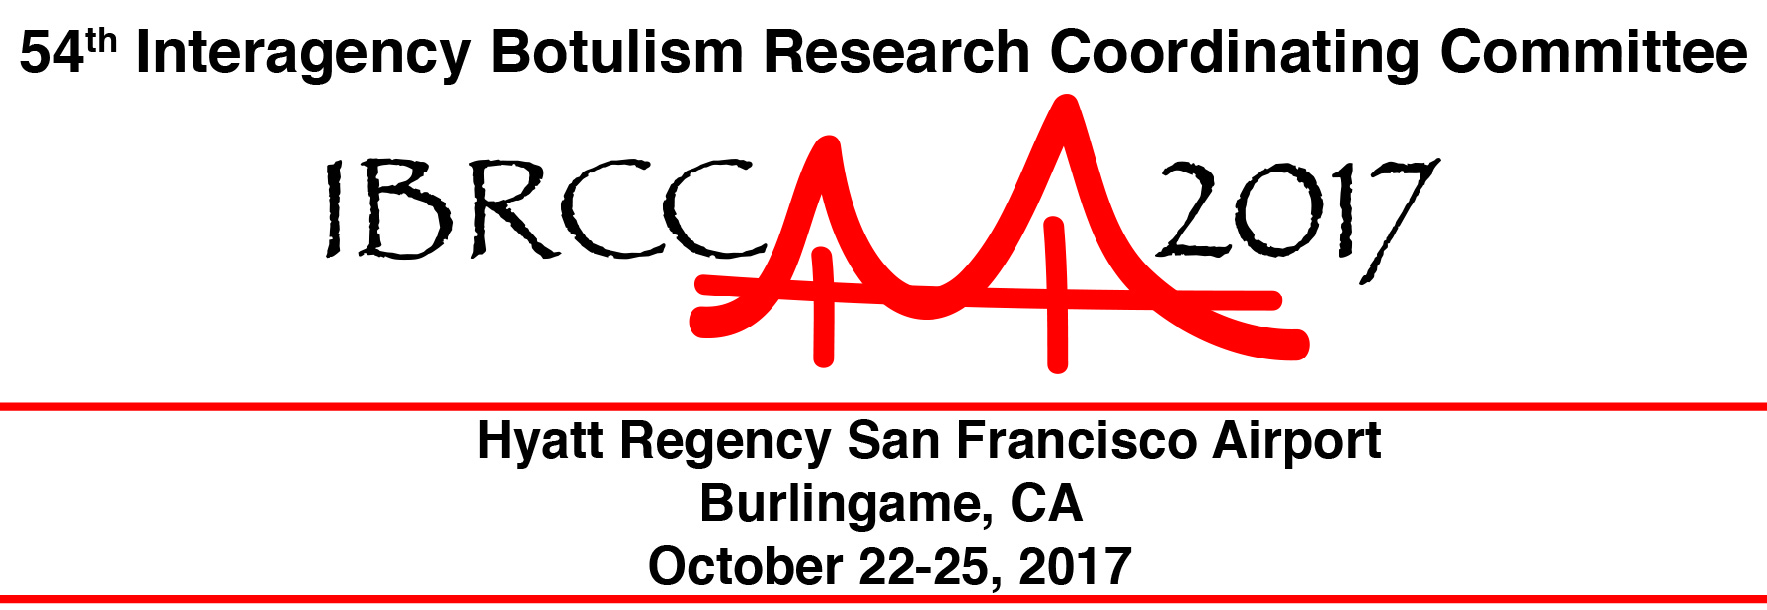 Interagency Botulism Research Coordinating Committee (IBRCC) Meeting 2017